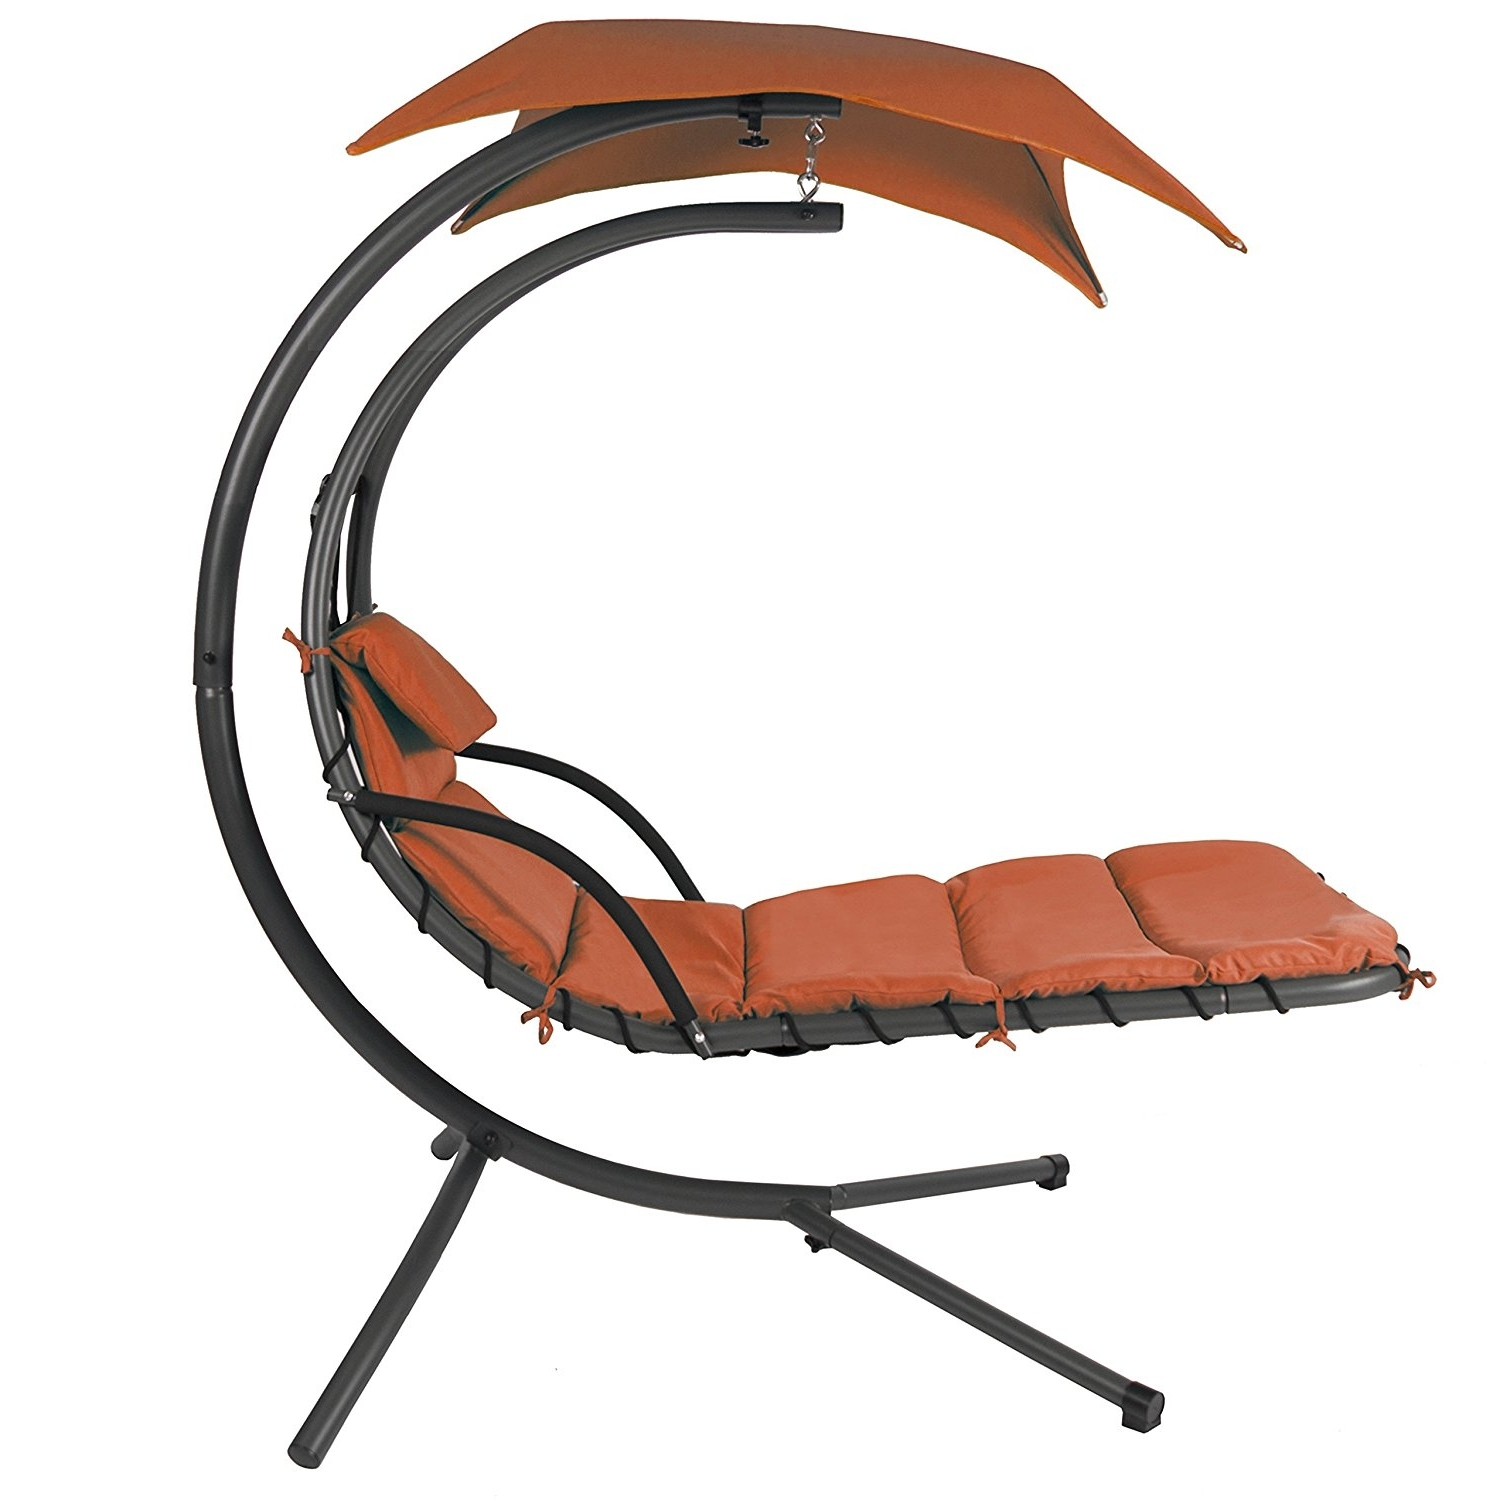 Amazon : Best Choice Products Orange Color Handing Chair Intended For Most Recent Chaise Lounge Swing Chairs (View 1 of 15)